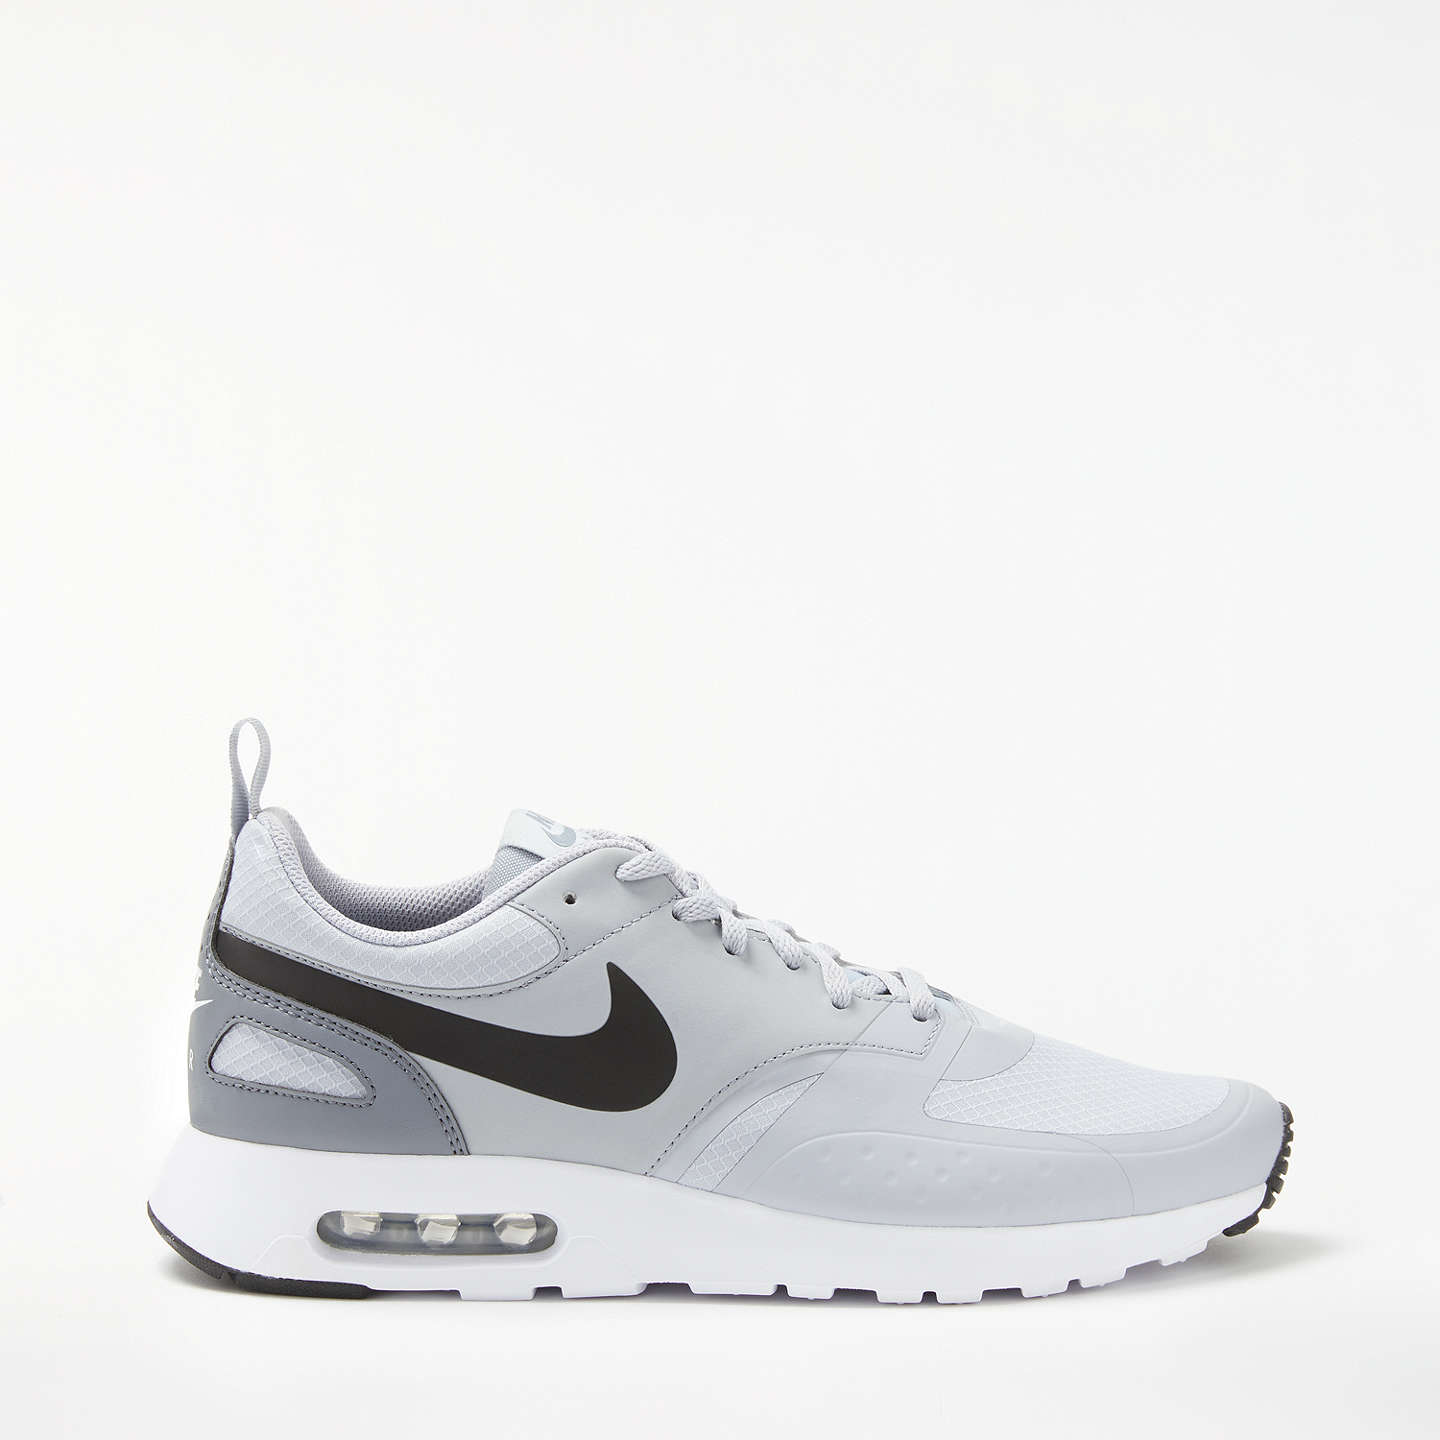 nike air max pink and grey vision trainers edge